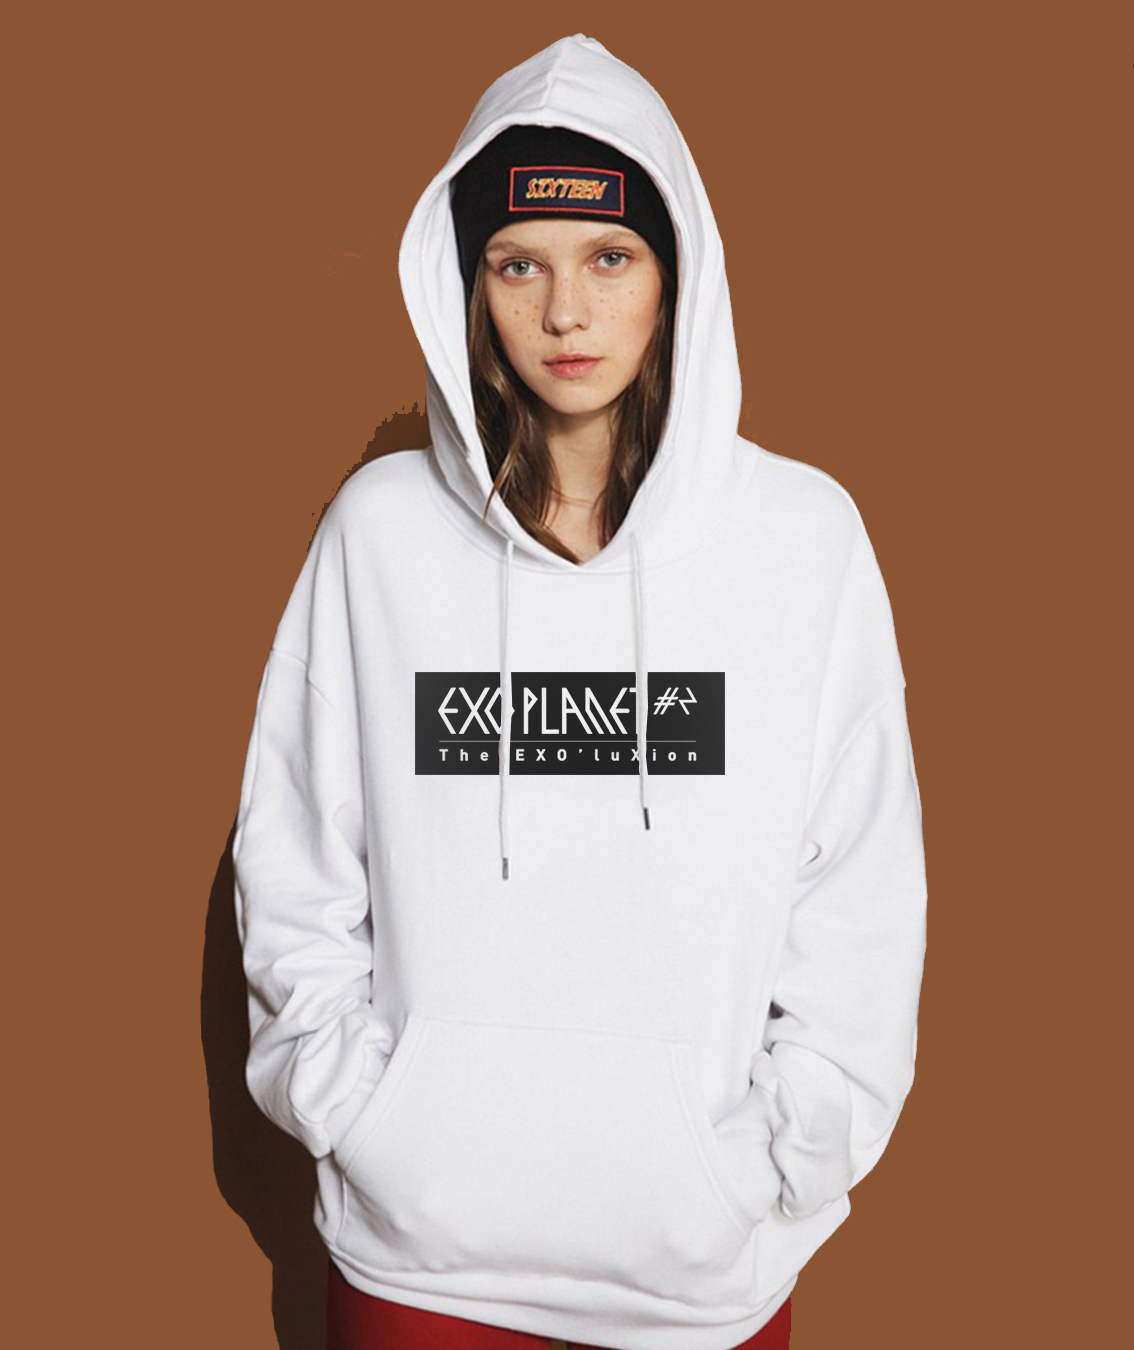 Hot Sale Hoodies For Women Sweatshirts 2017 Spring Winter Fleece Women's Sportswear Female Sweatshirt EXO Star Wears Kpop Brand